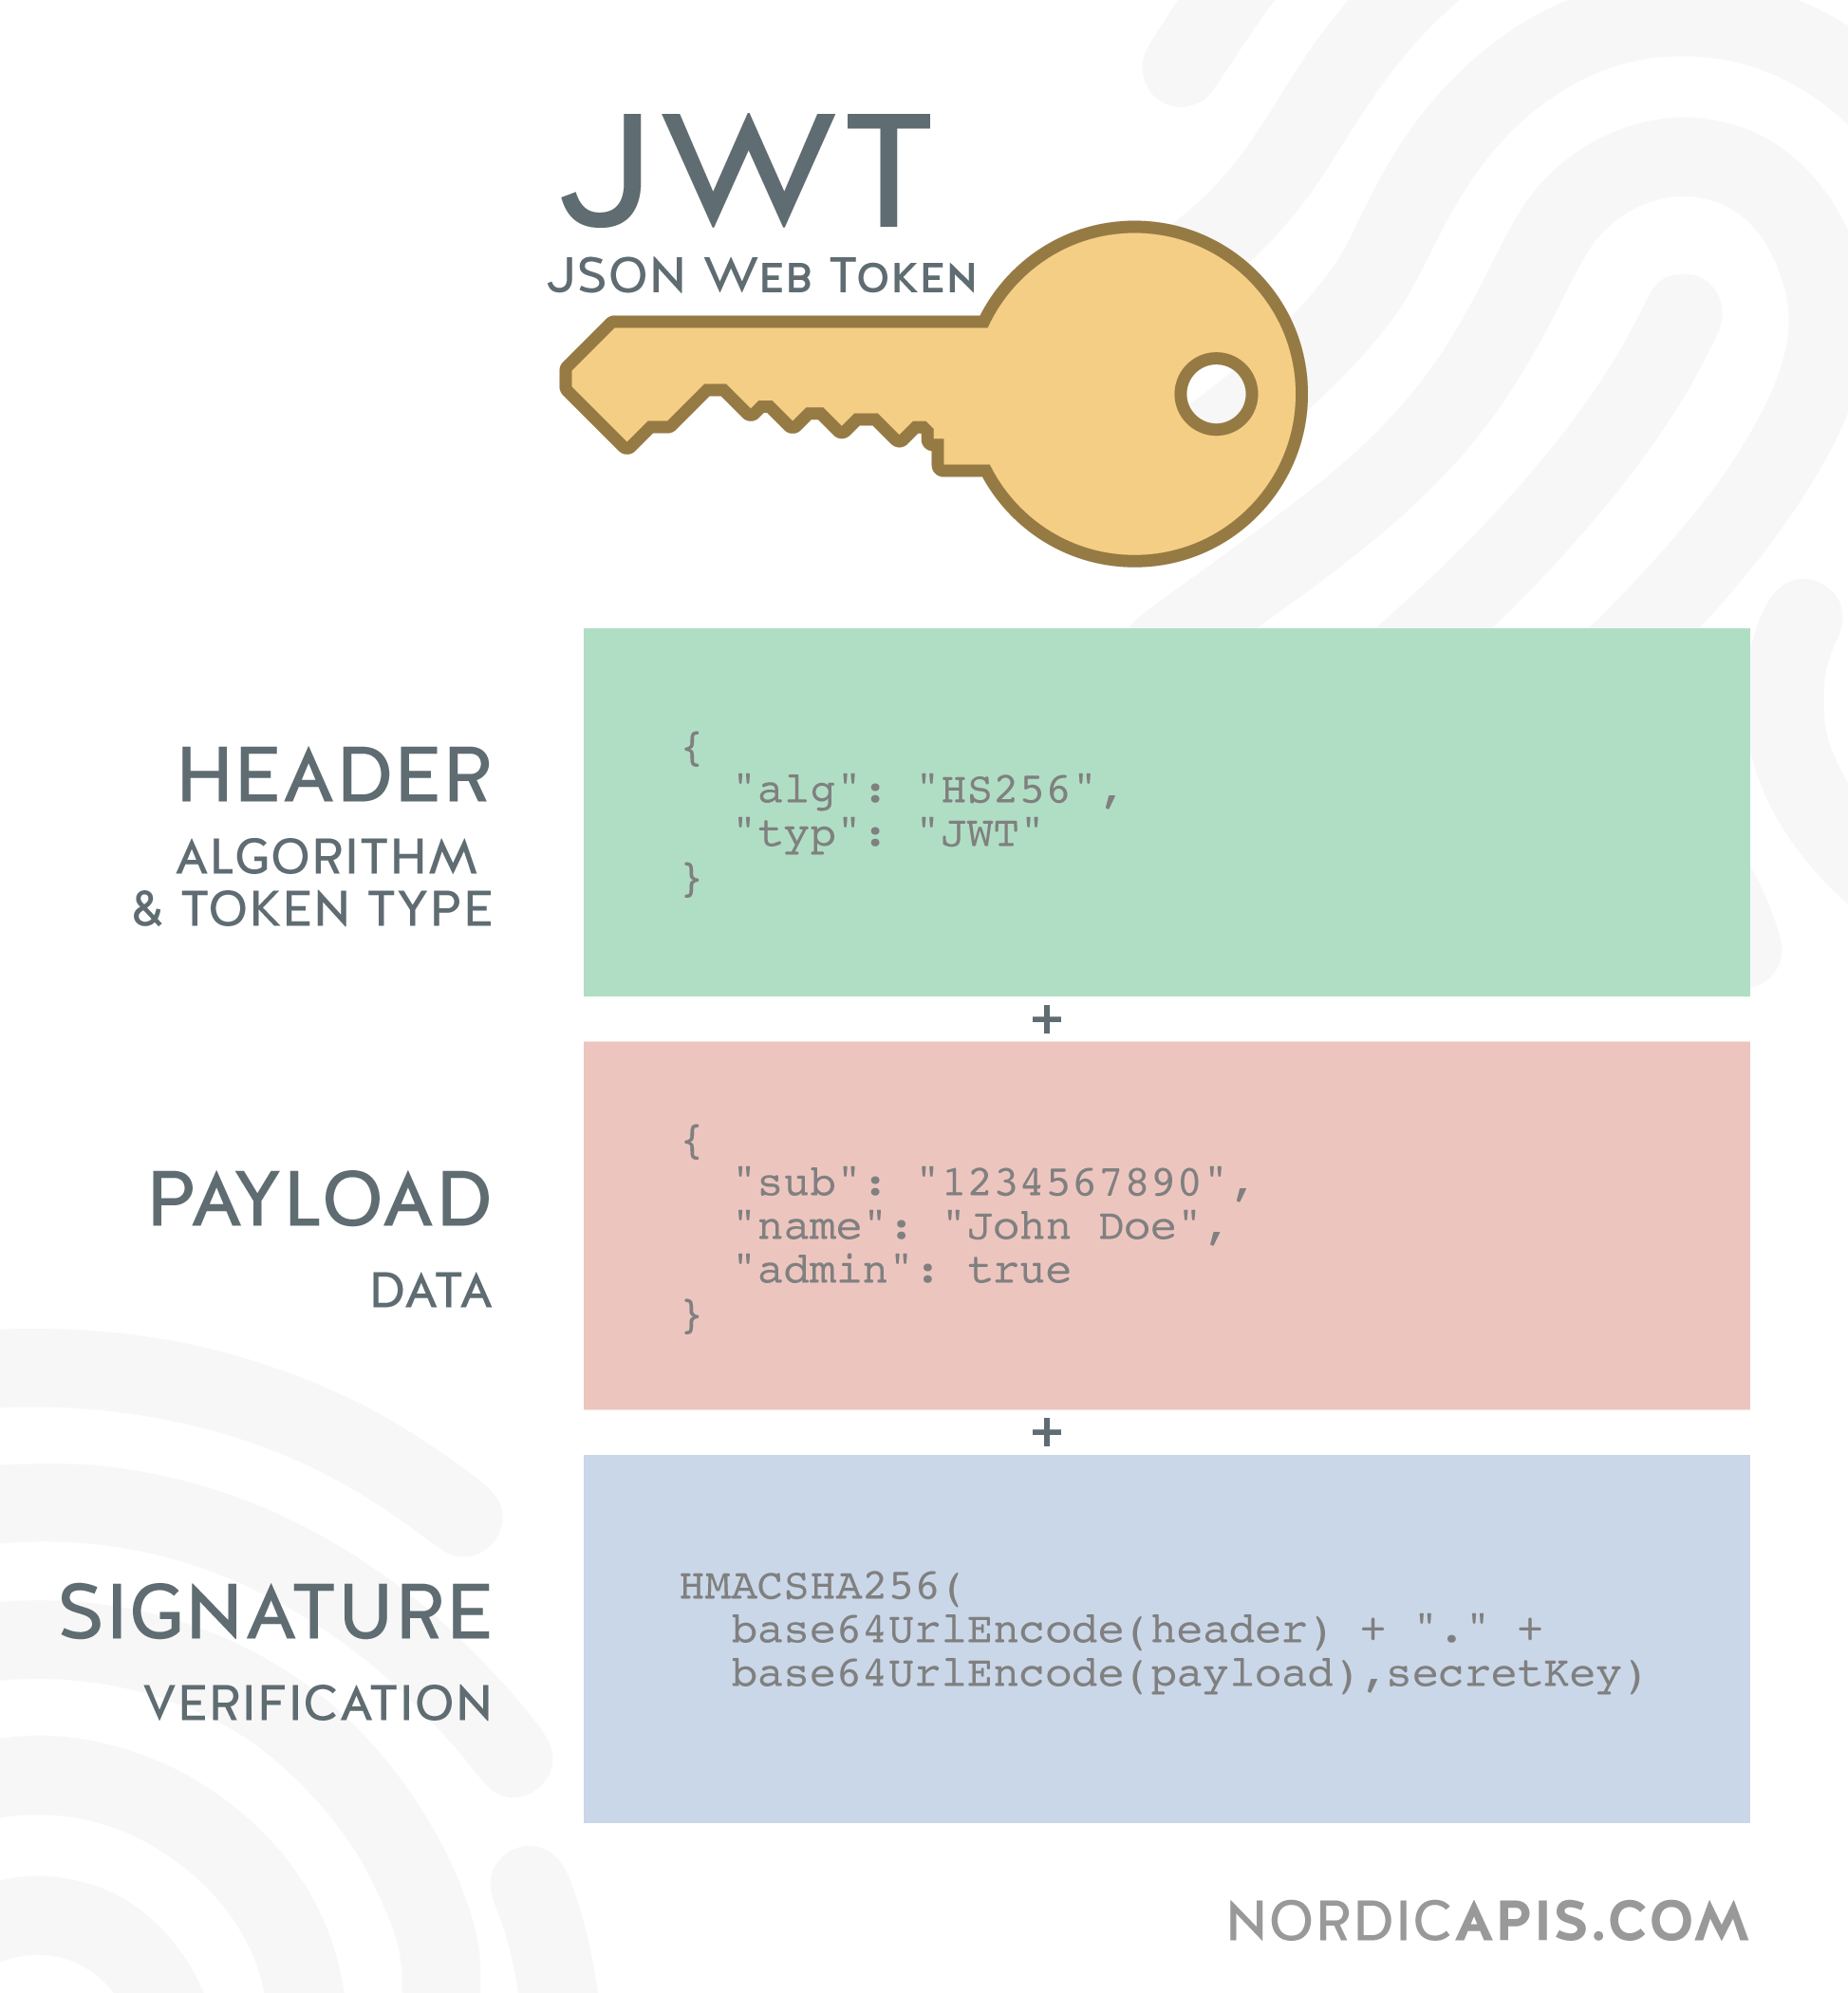 Why Can't I Just Send JWTs Without OAuth? | Nordic APIs |